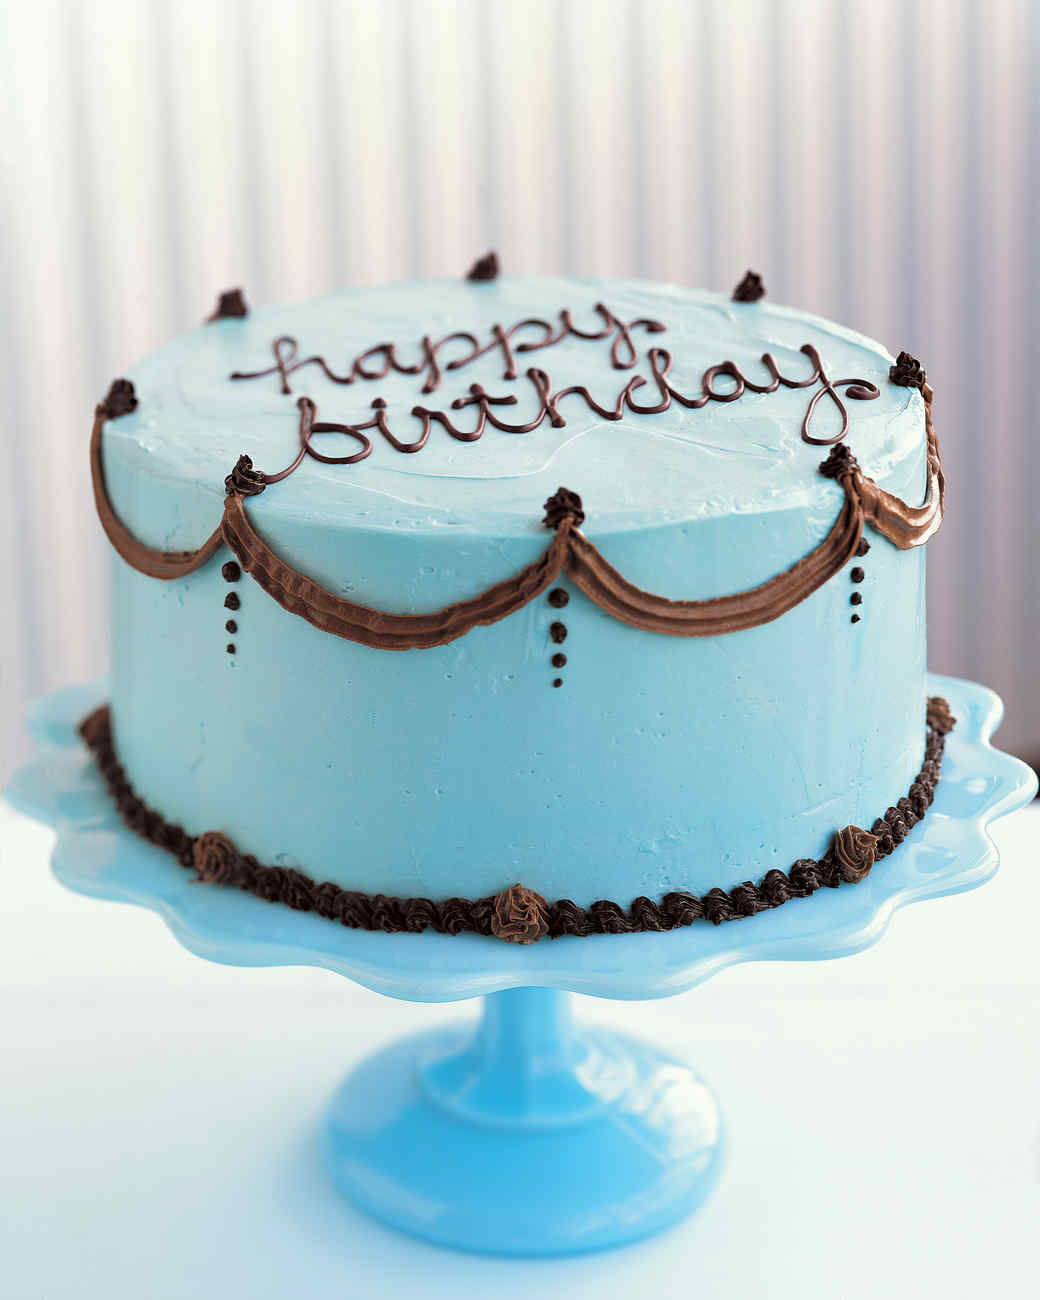 Cake Decorating Birthday Cakes : How to Decorate a Birthday Cake Martha Stewart